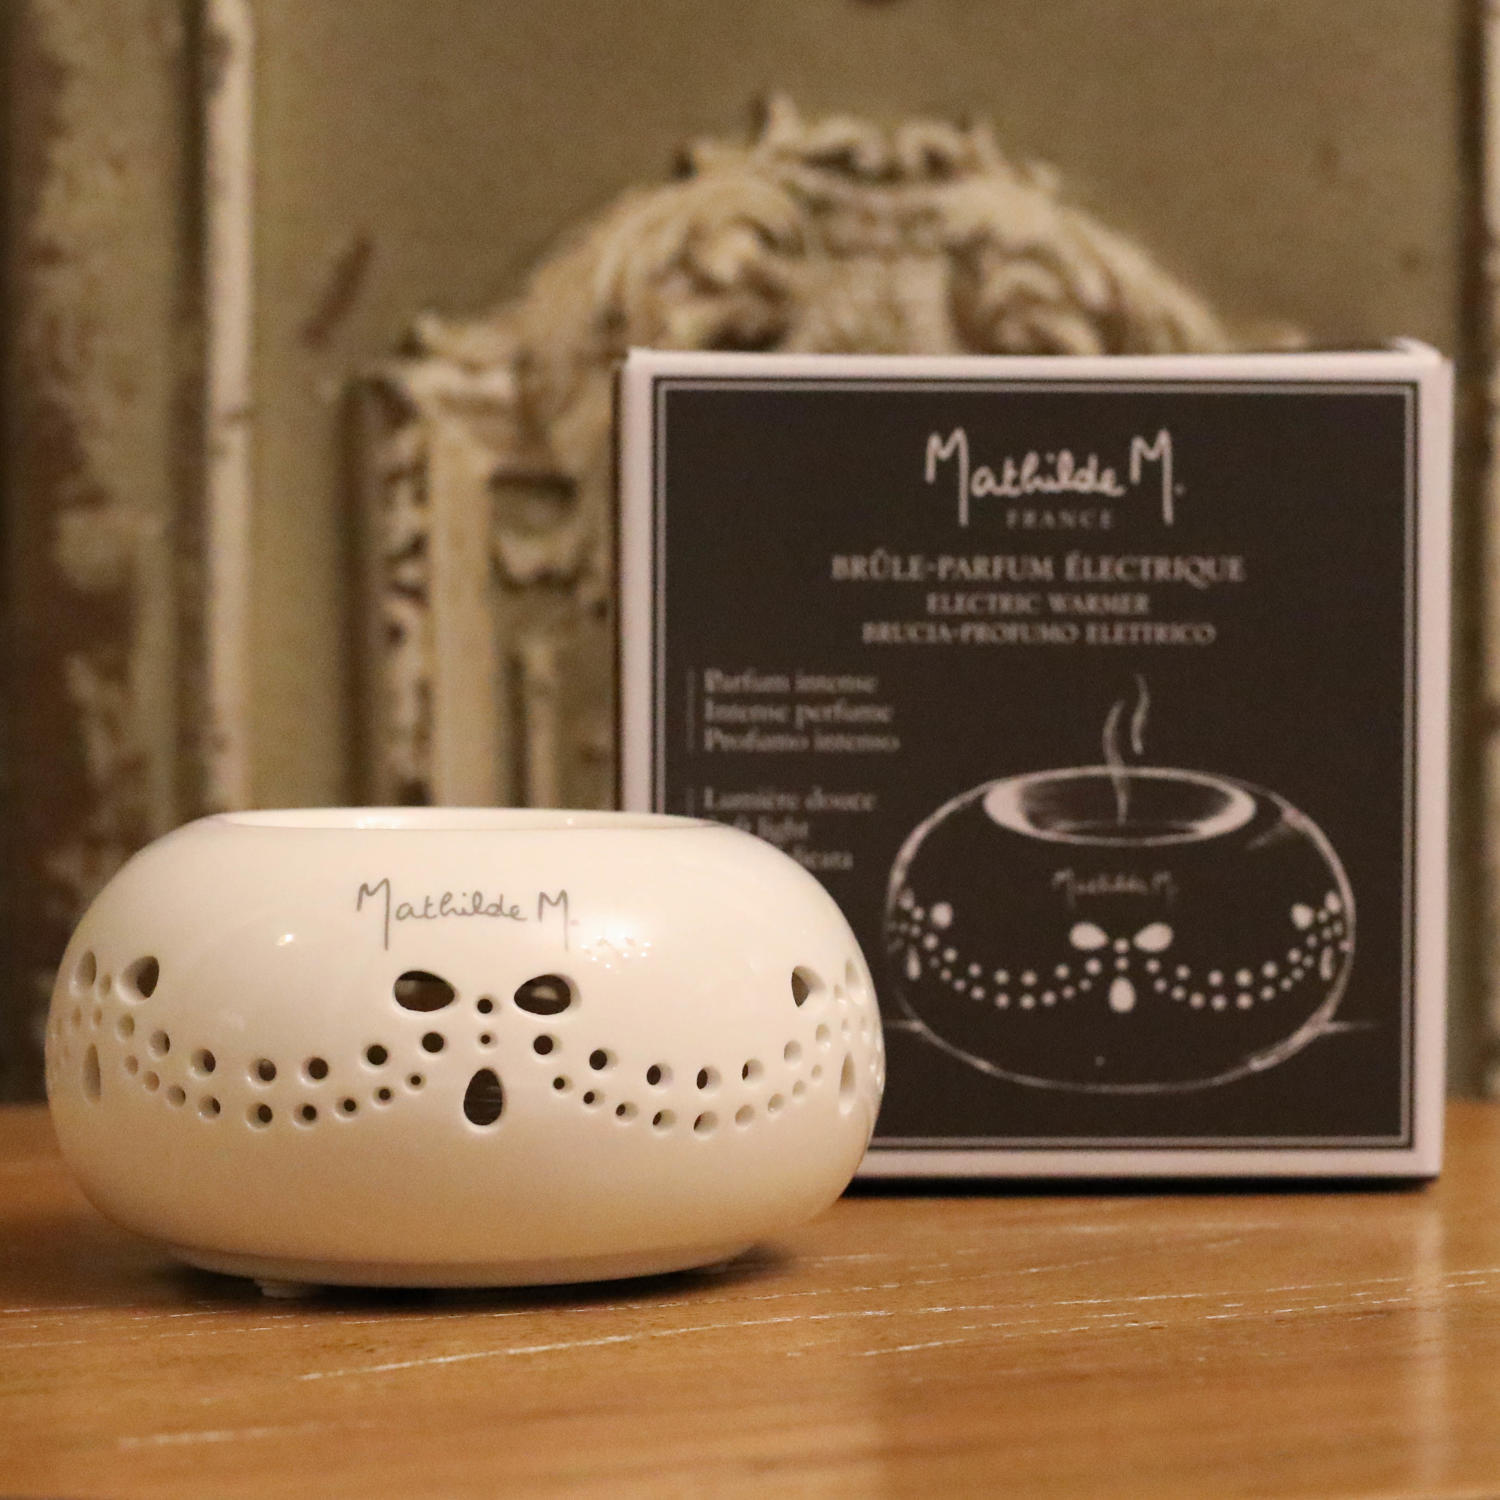 Mathilde M. France - Electric Wax Melt Warmer.